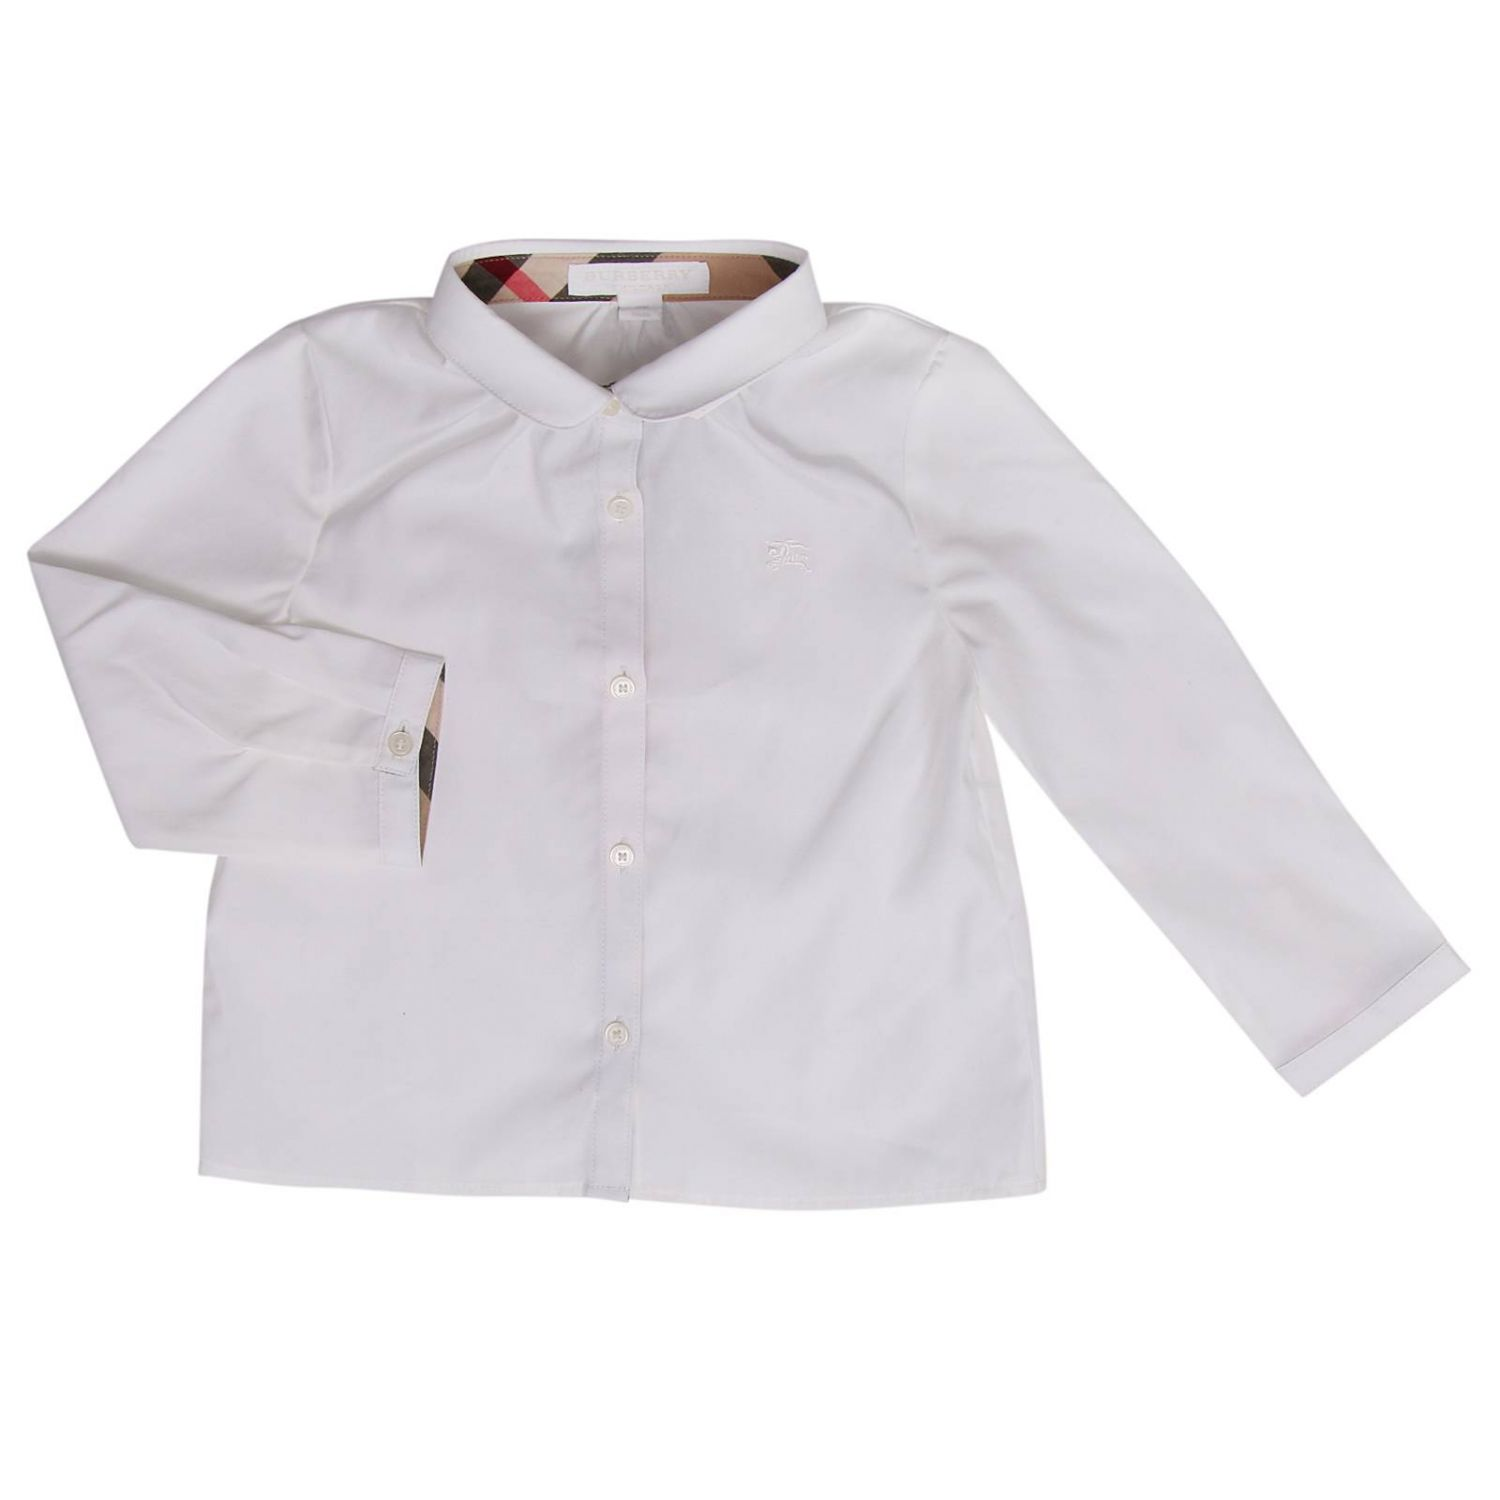 Bluse Kinder Burberry Layette